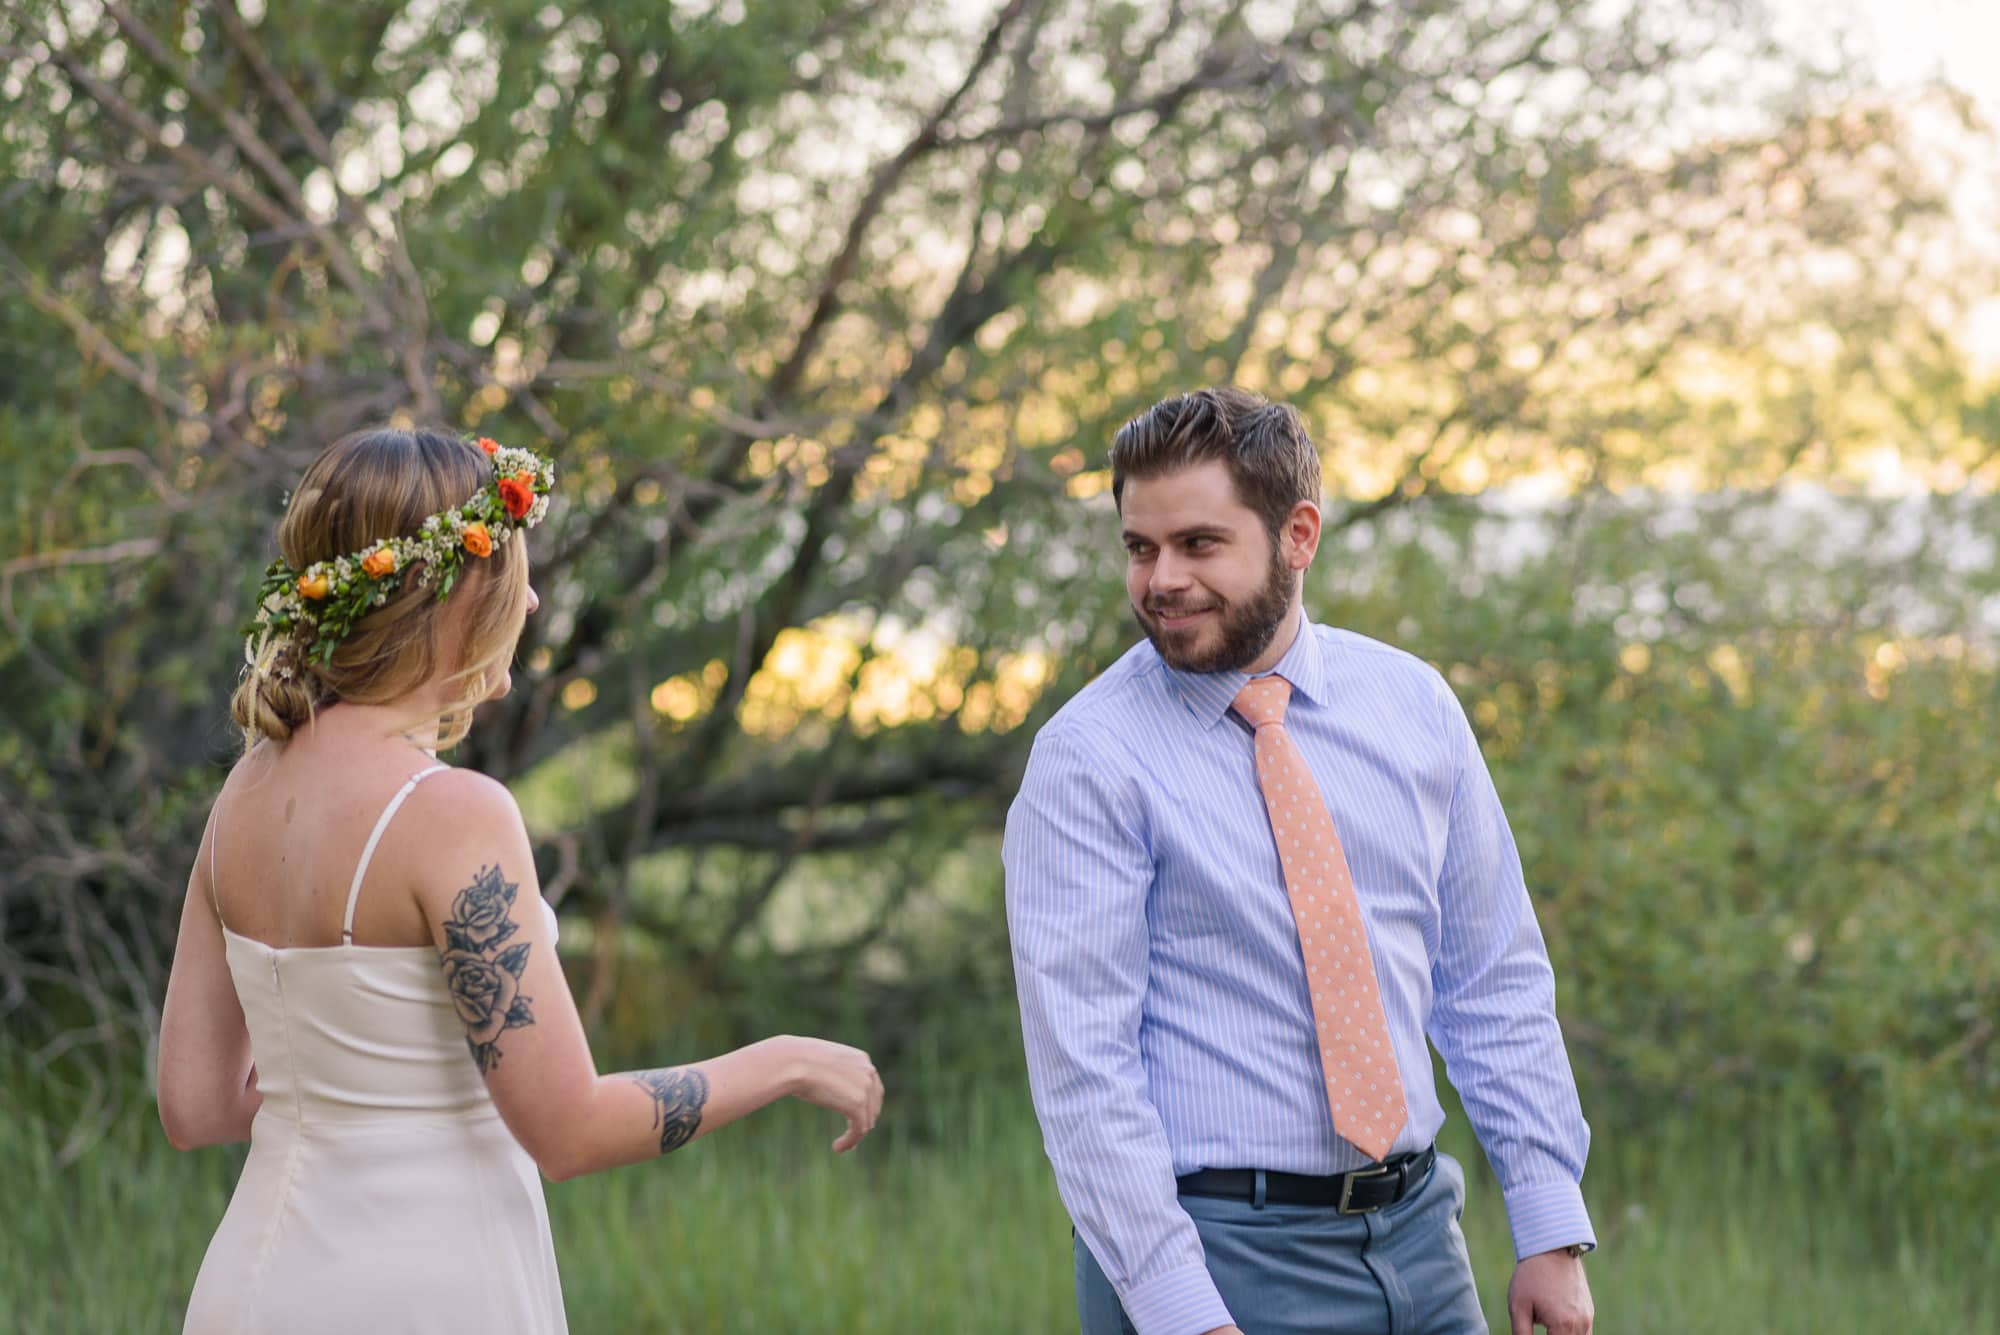 006_Alan_and_Heidi_Kensey_Josh_Big_Bear_Elopement